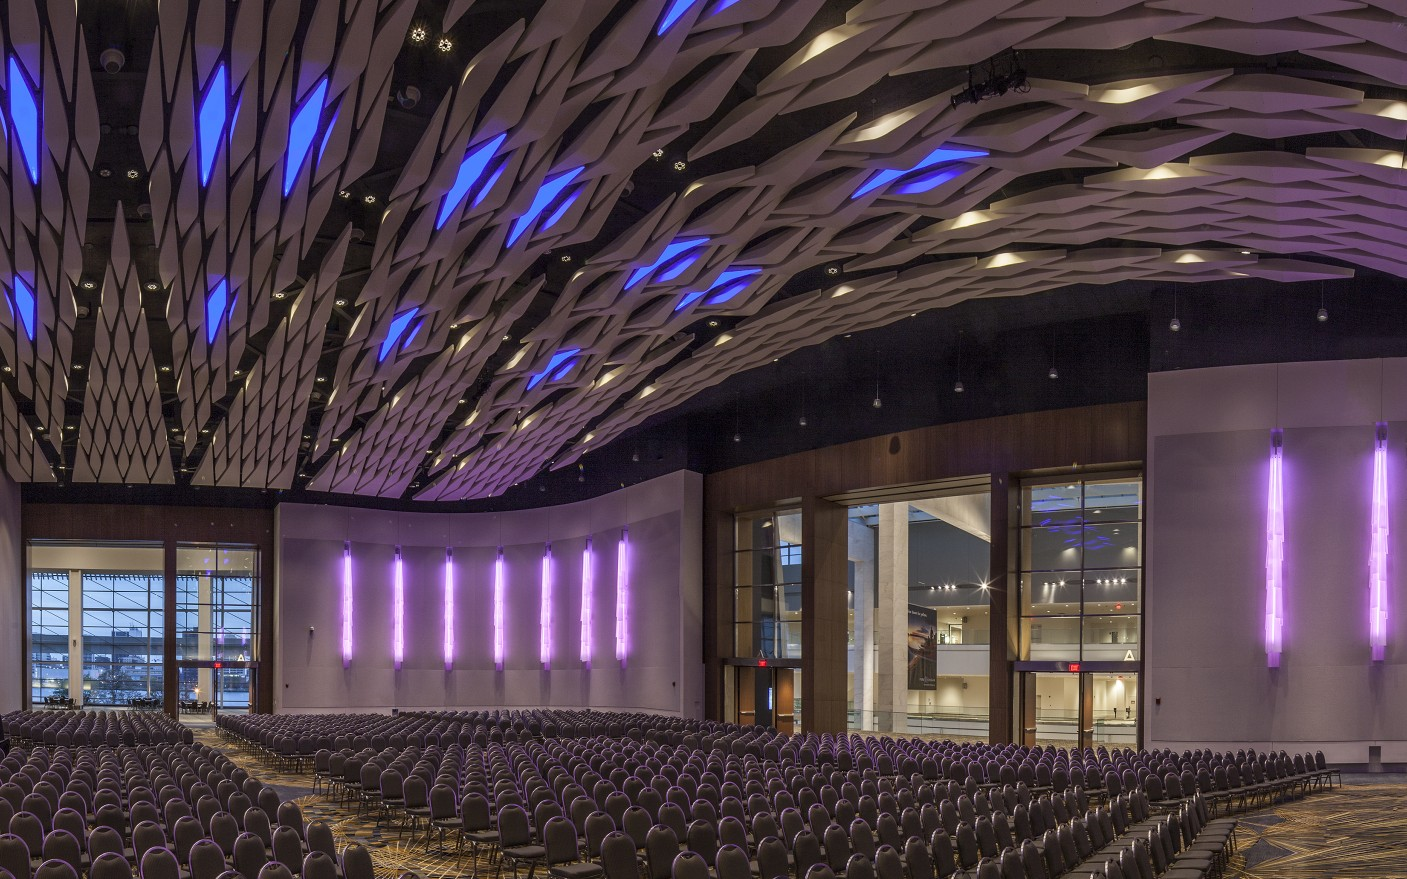 Fully dimmable, the luminaires let the ballroom change the look and feel of the space.